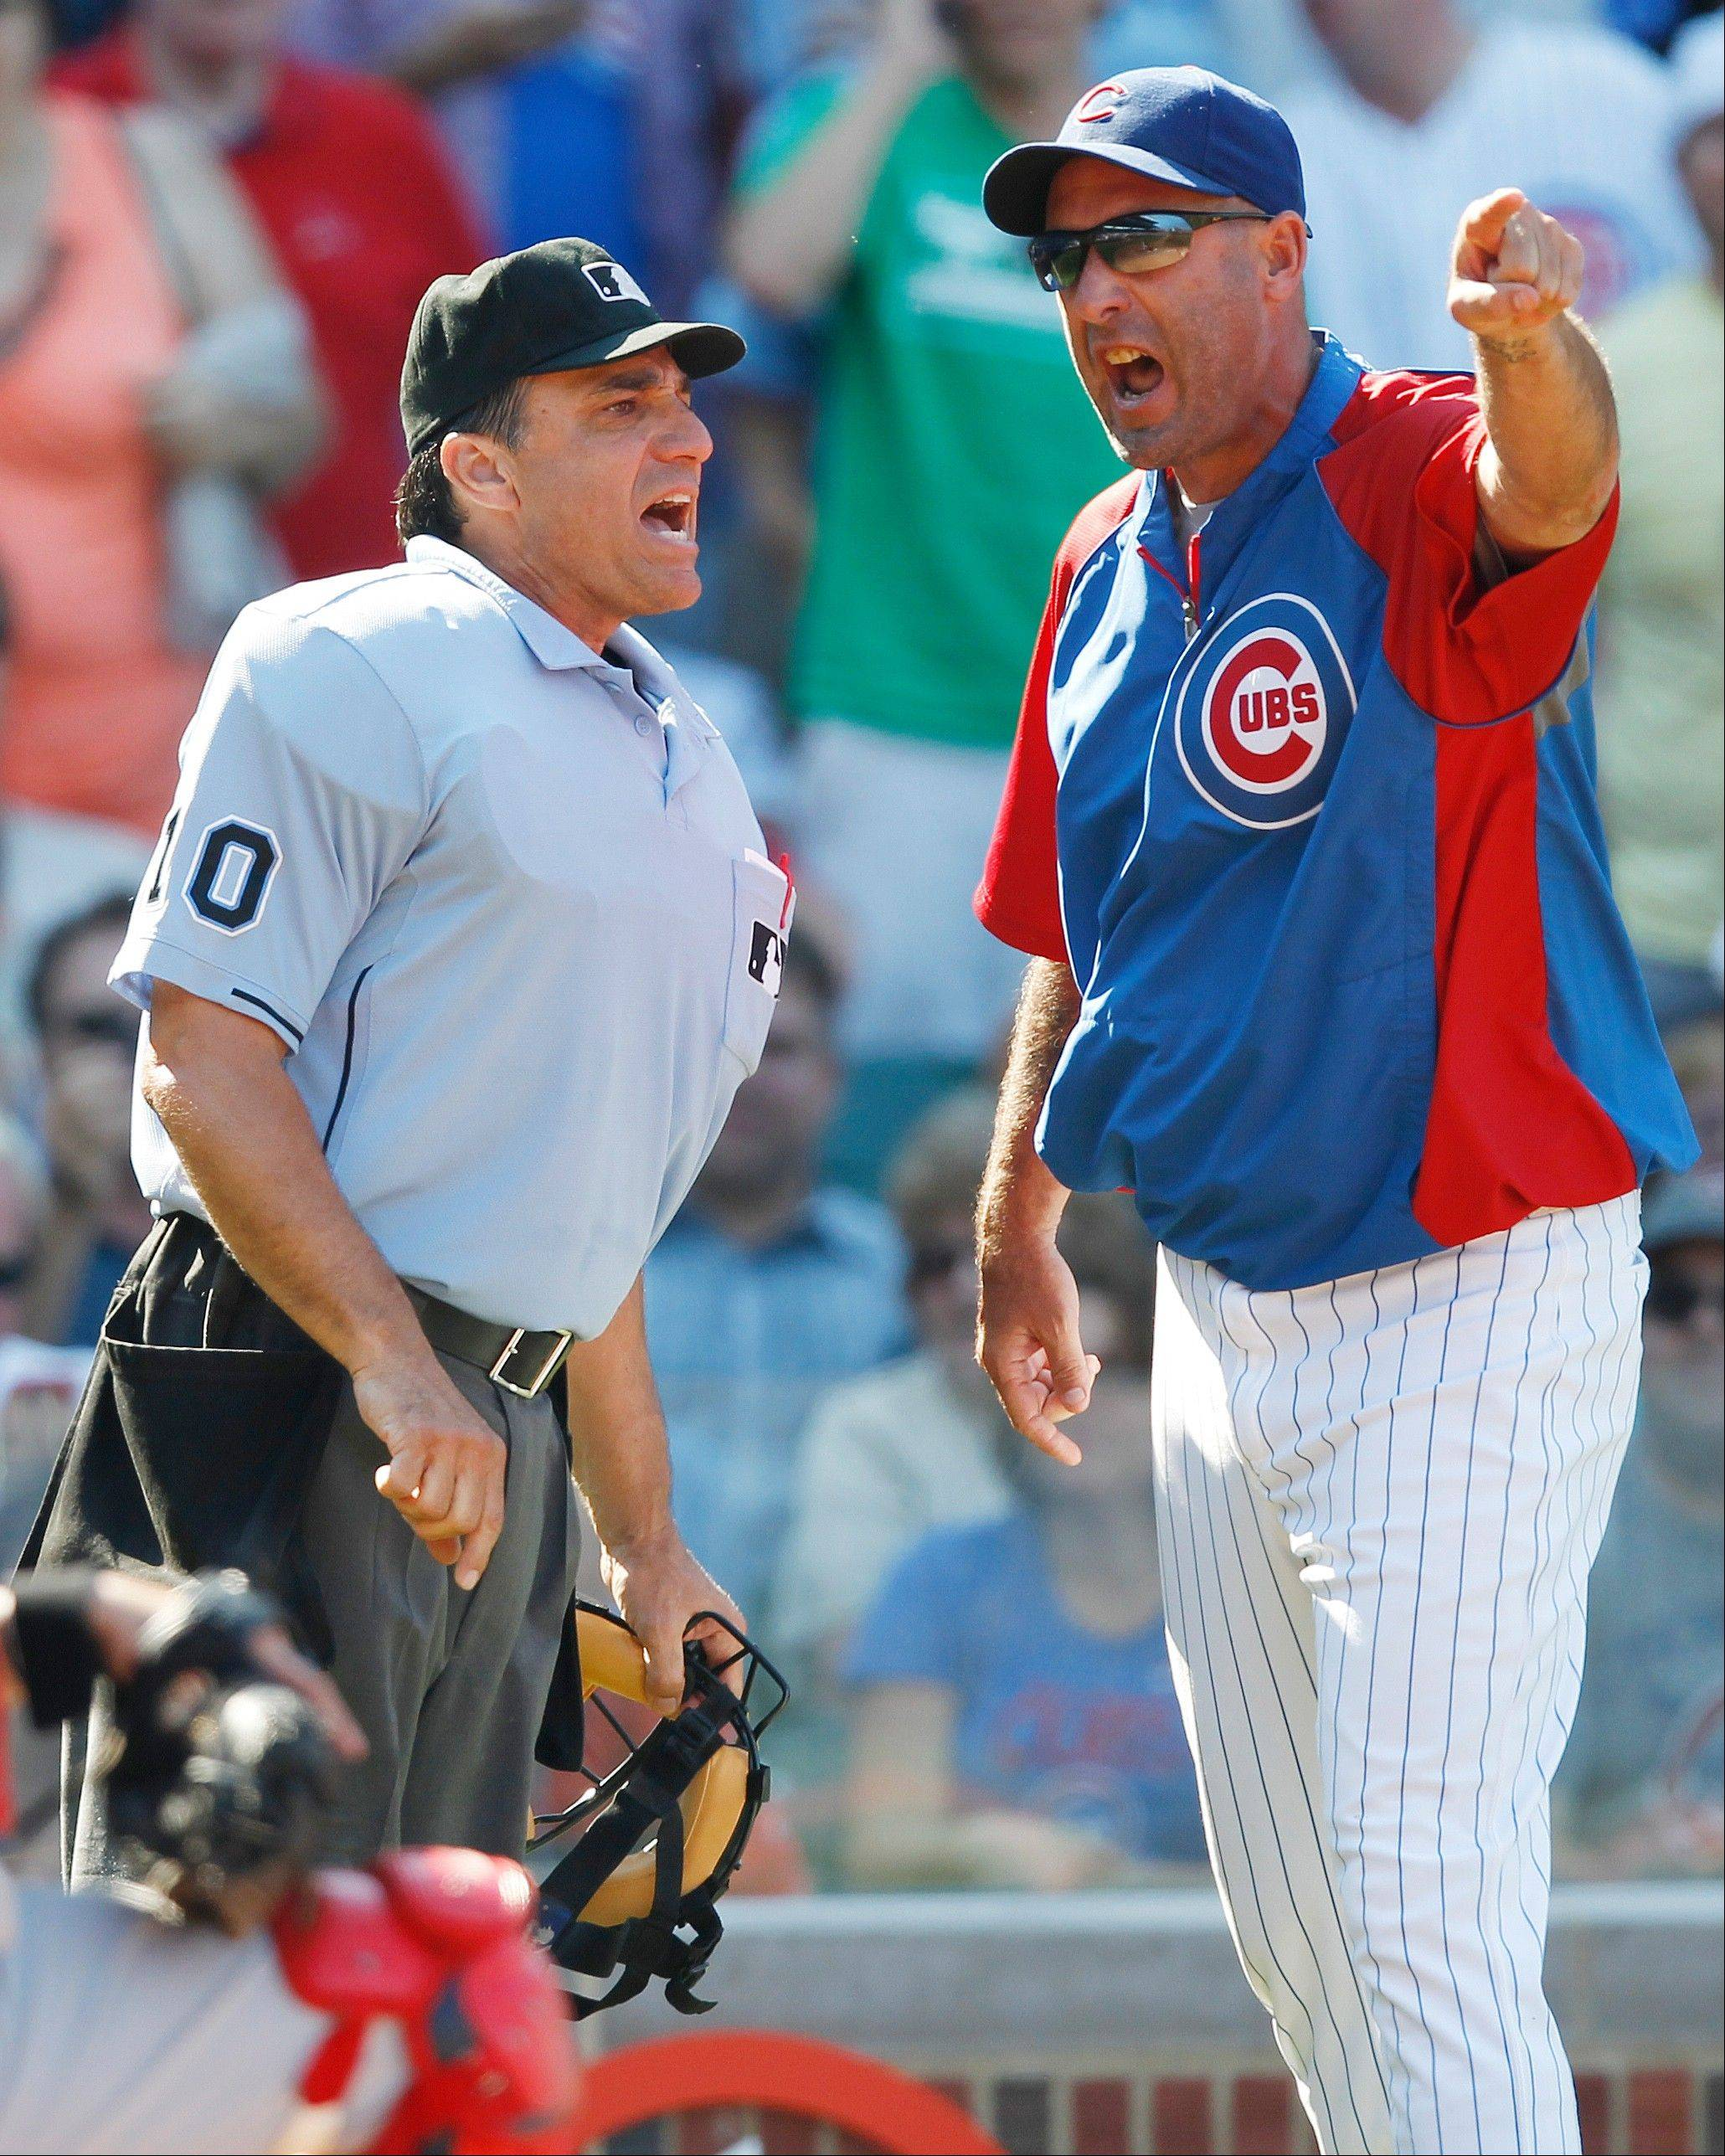 Cubs manager Dale Sveum argues with plate umpire Phil Cuzzi after the Cubs' Donnie Murphy was called out on a checked swing in the seventh inning. Sveum was ejected from the game.